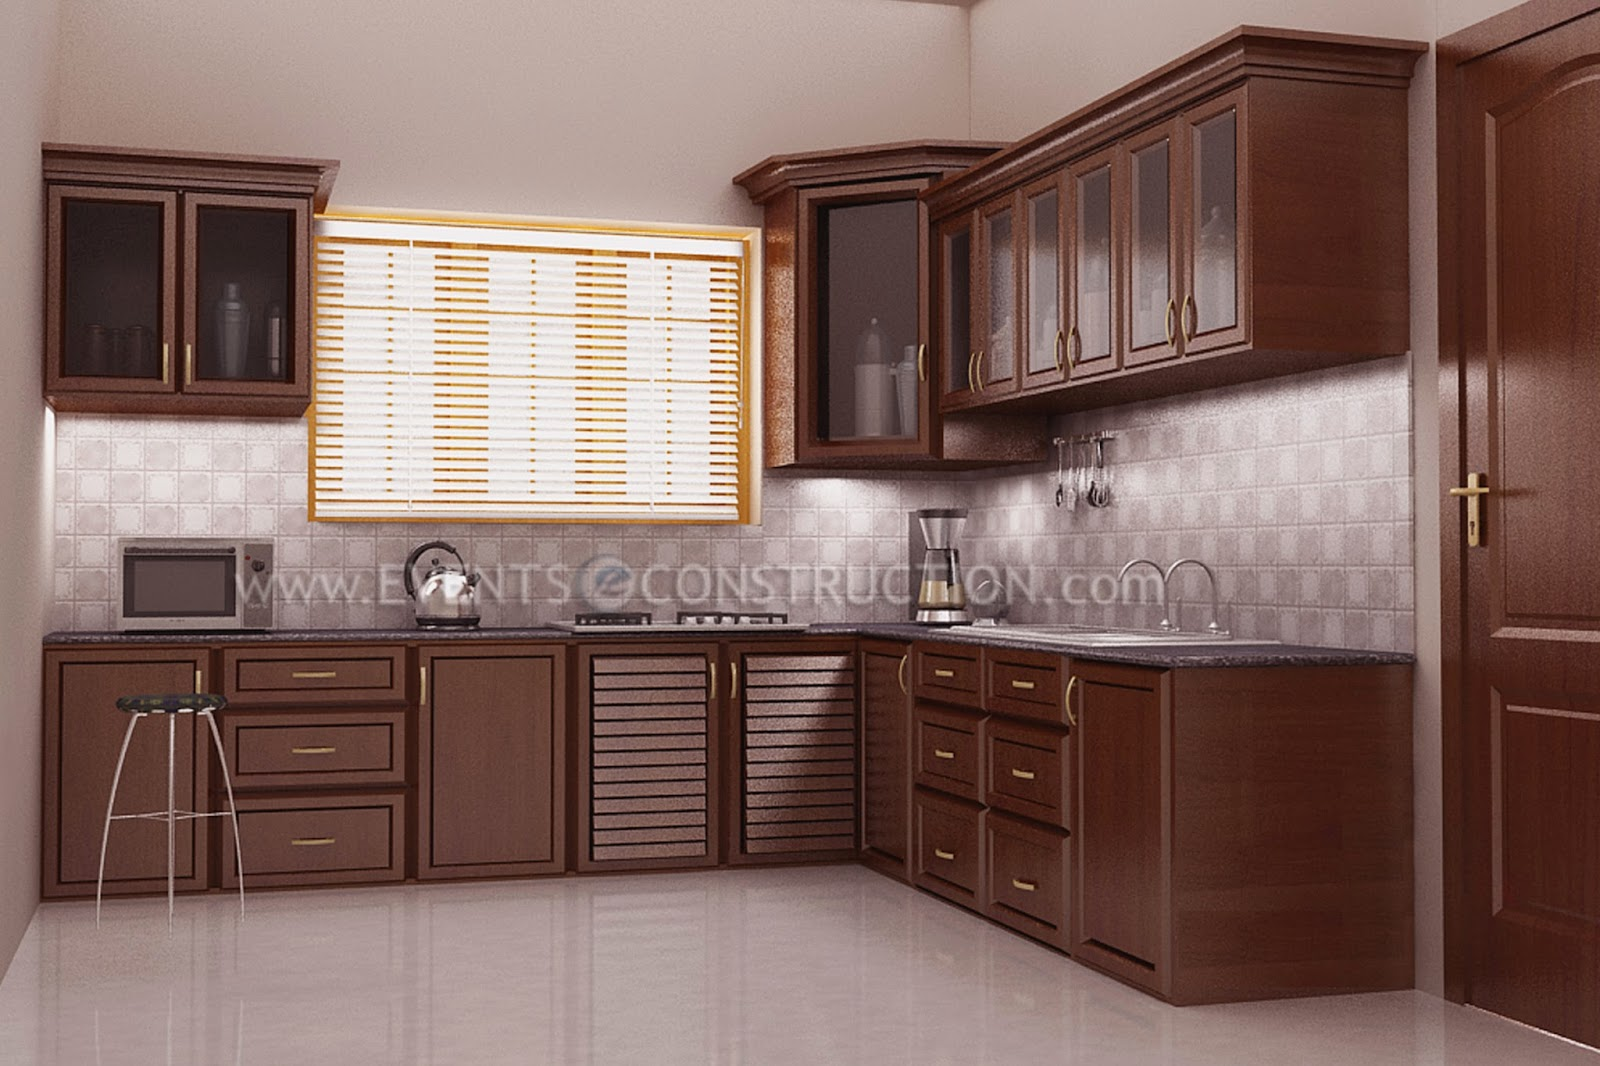 Evens Construction Pvt Ltd Kitchen Design With Wooden Cabinets